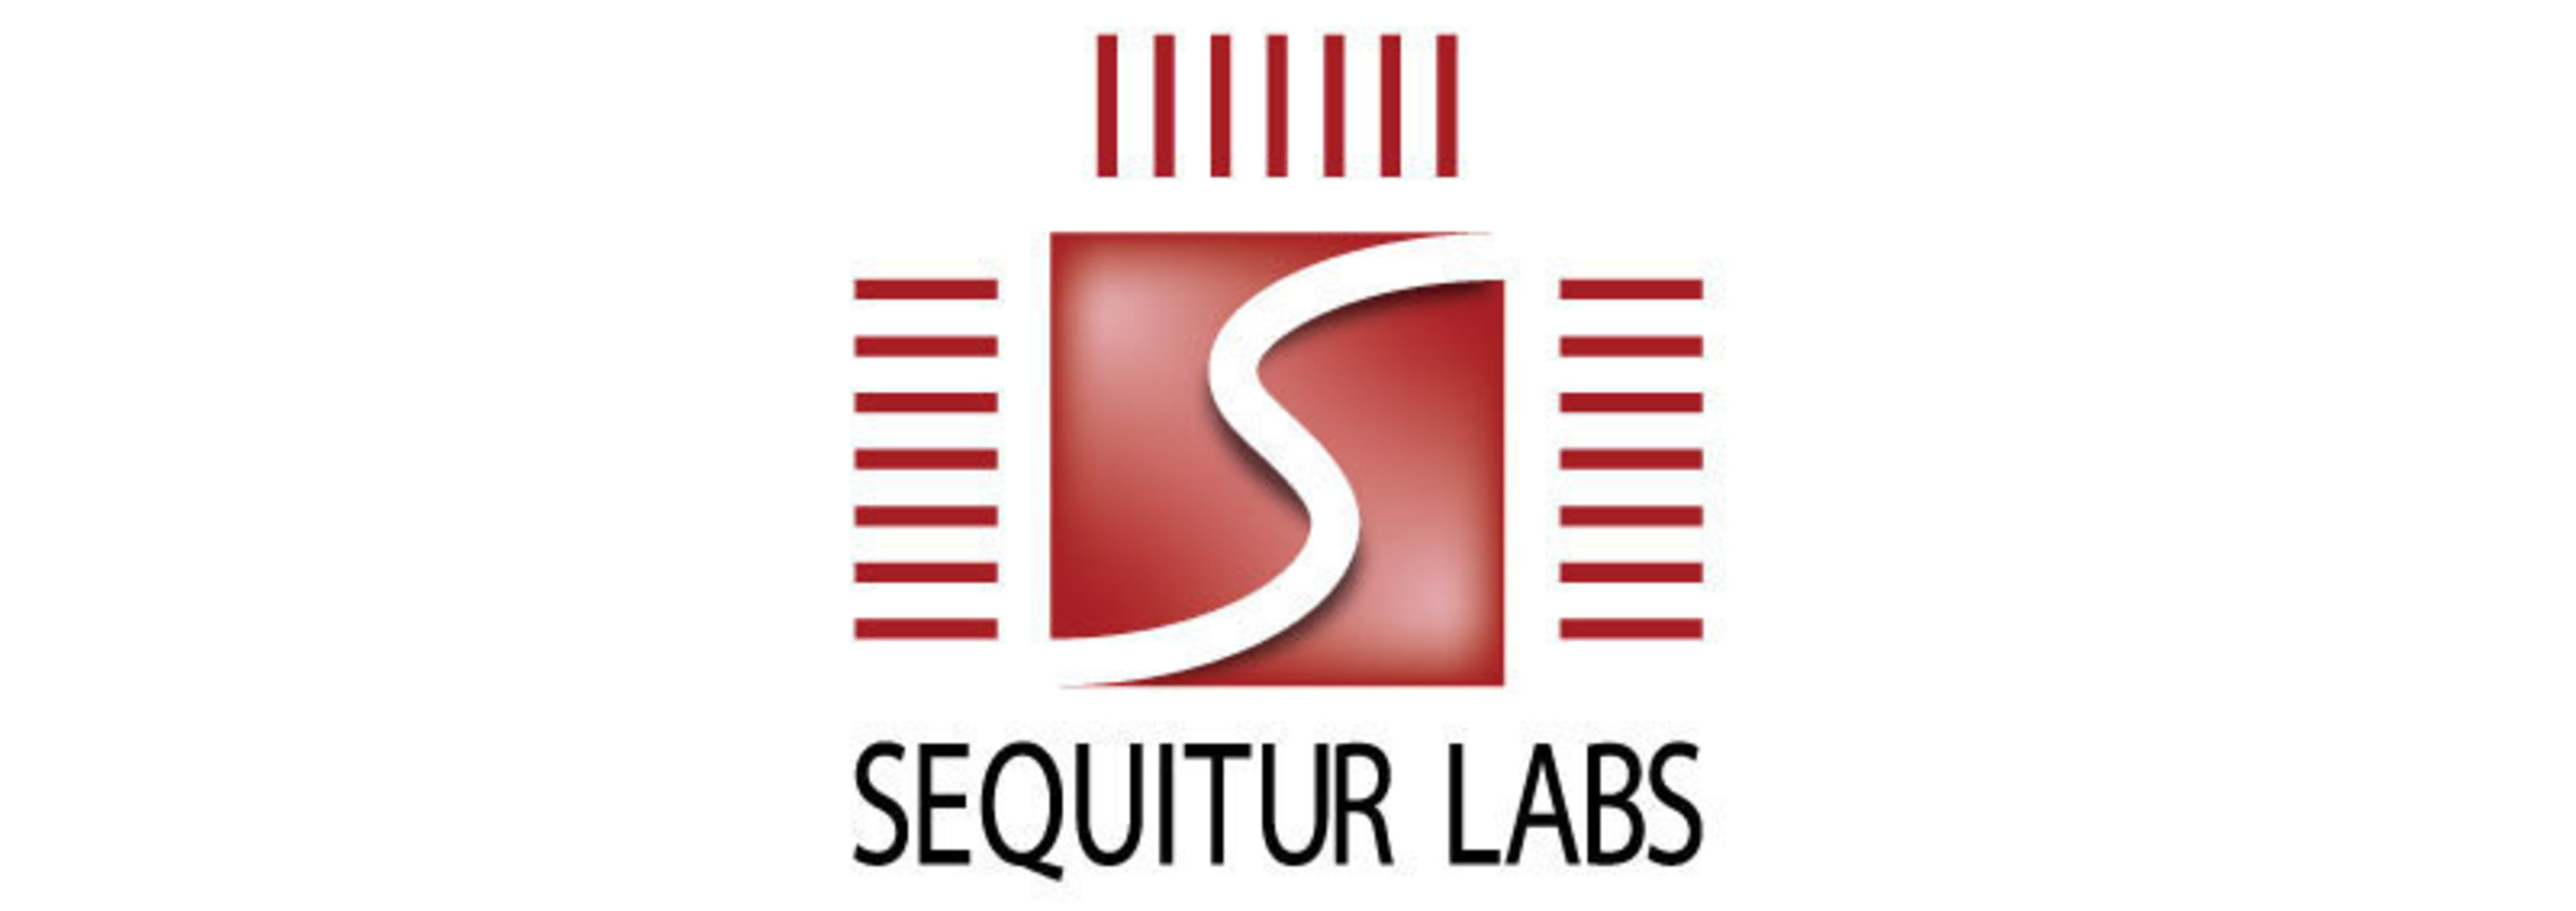 Sequitur Labs Enhances IoT and Embedded Security with CoreLockr''